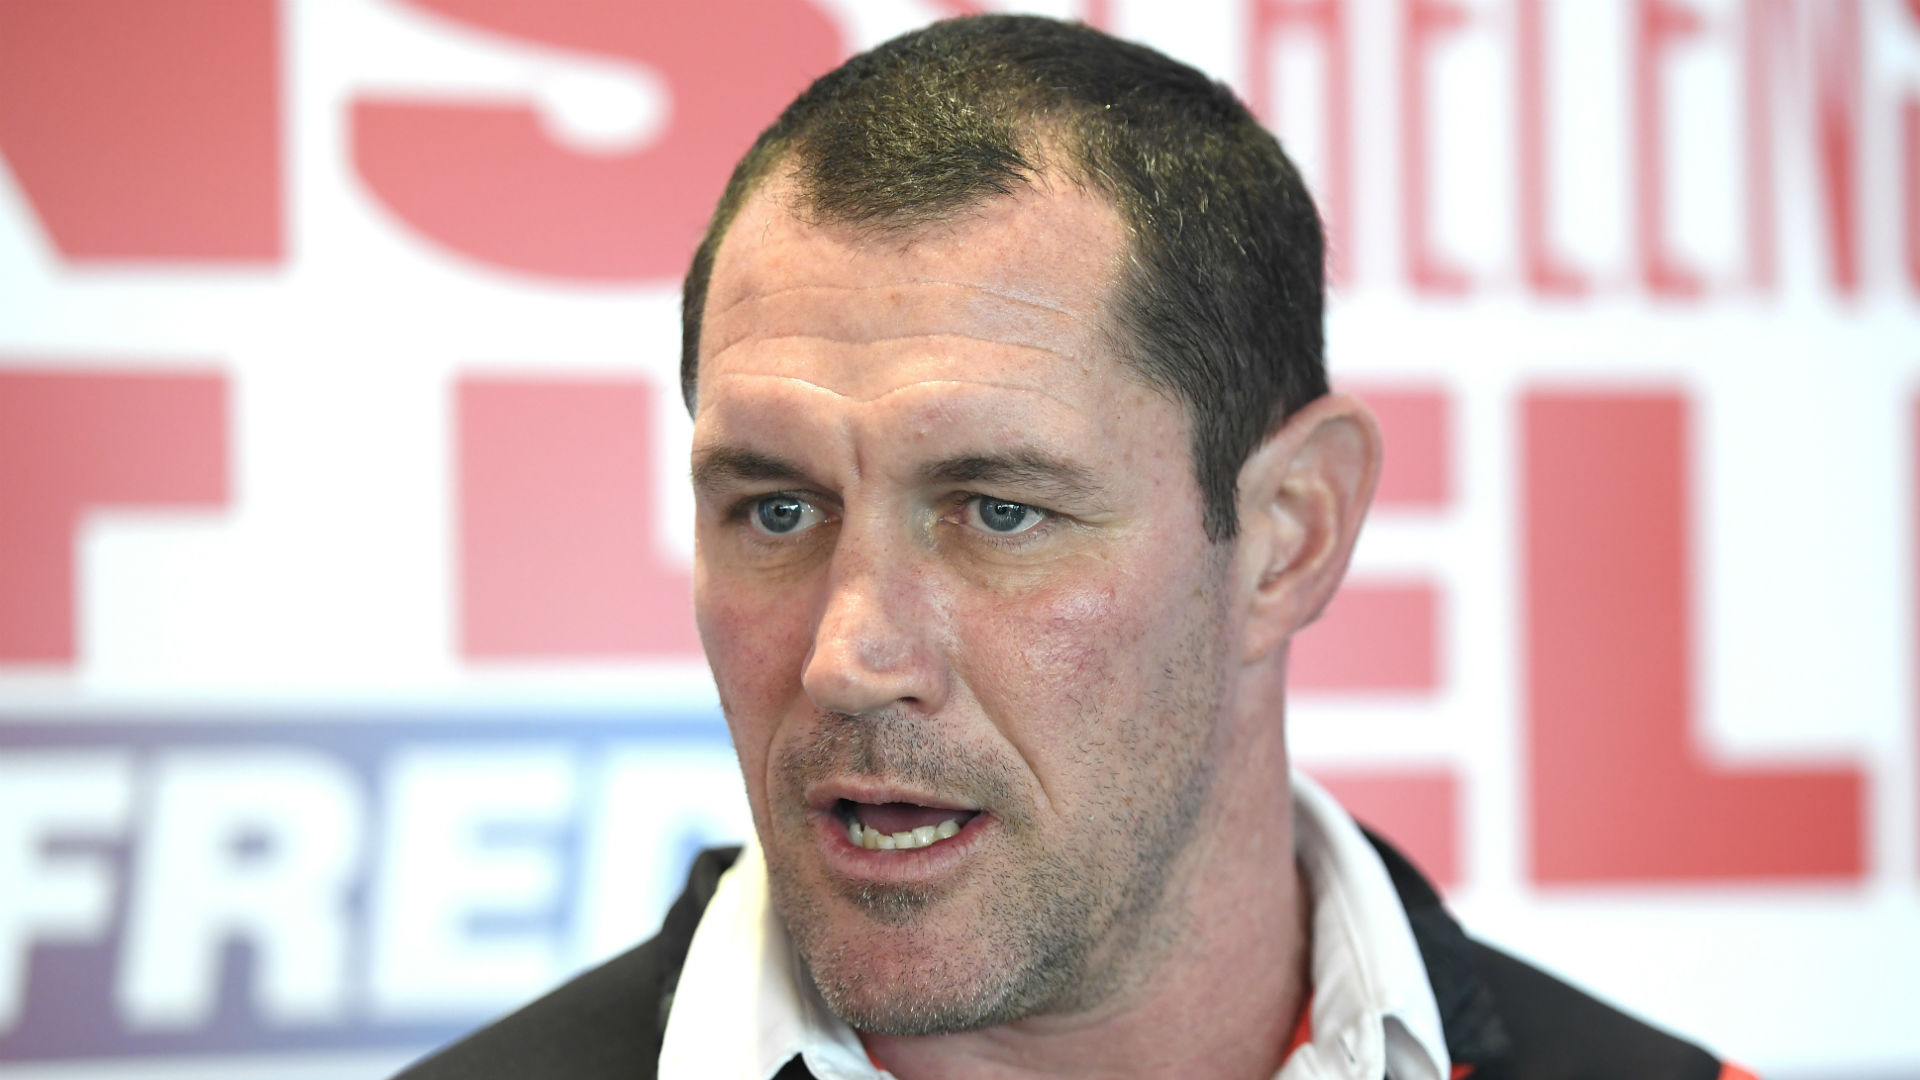 There's still improvement in the group - Woolf says St Helens can build on stunning 2019